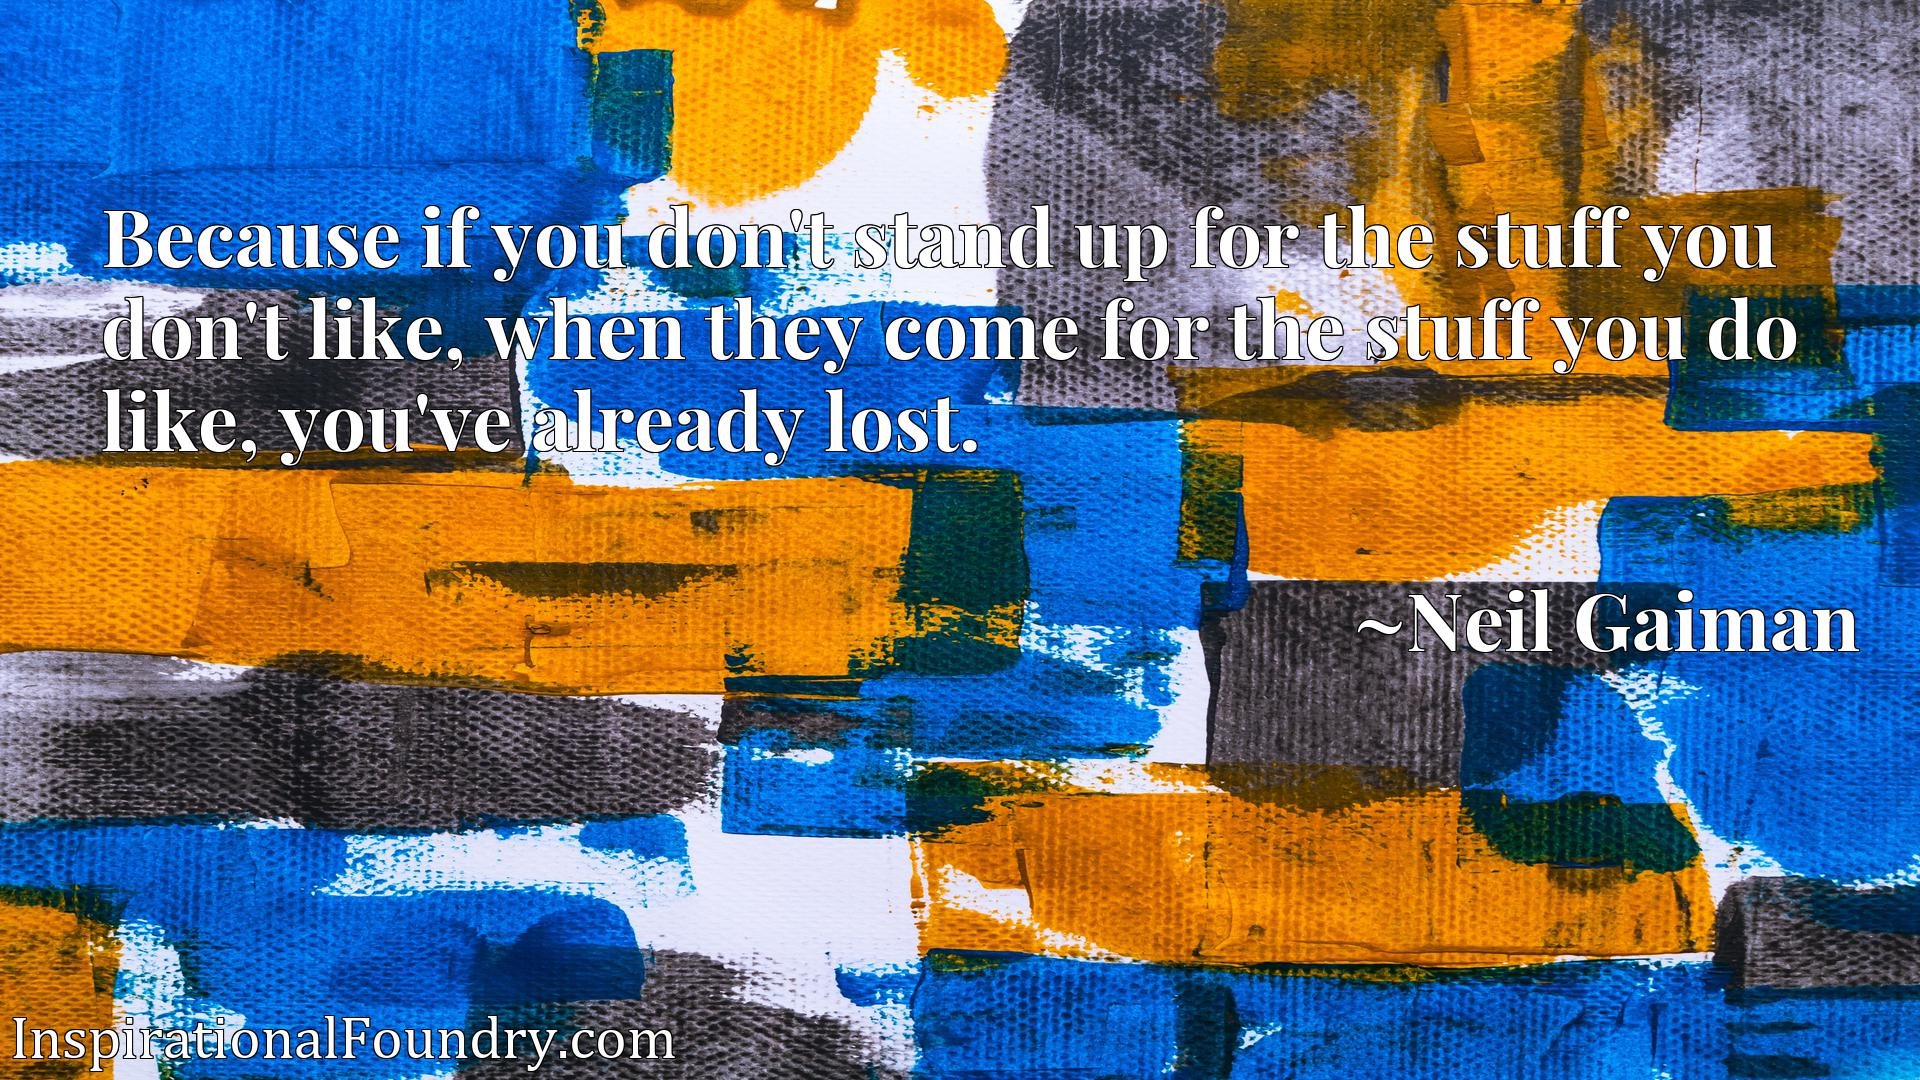 Quote Picture :Because if you don't stand up for the stuff you don't like, when they come for the stuff you do like, you've already lost.